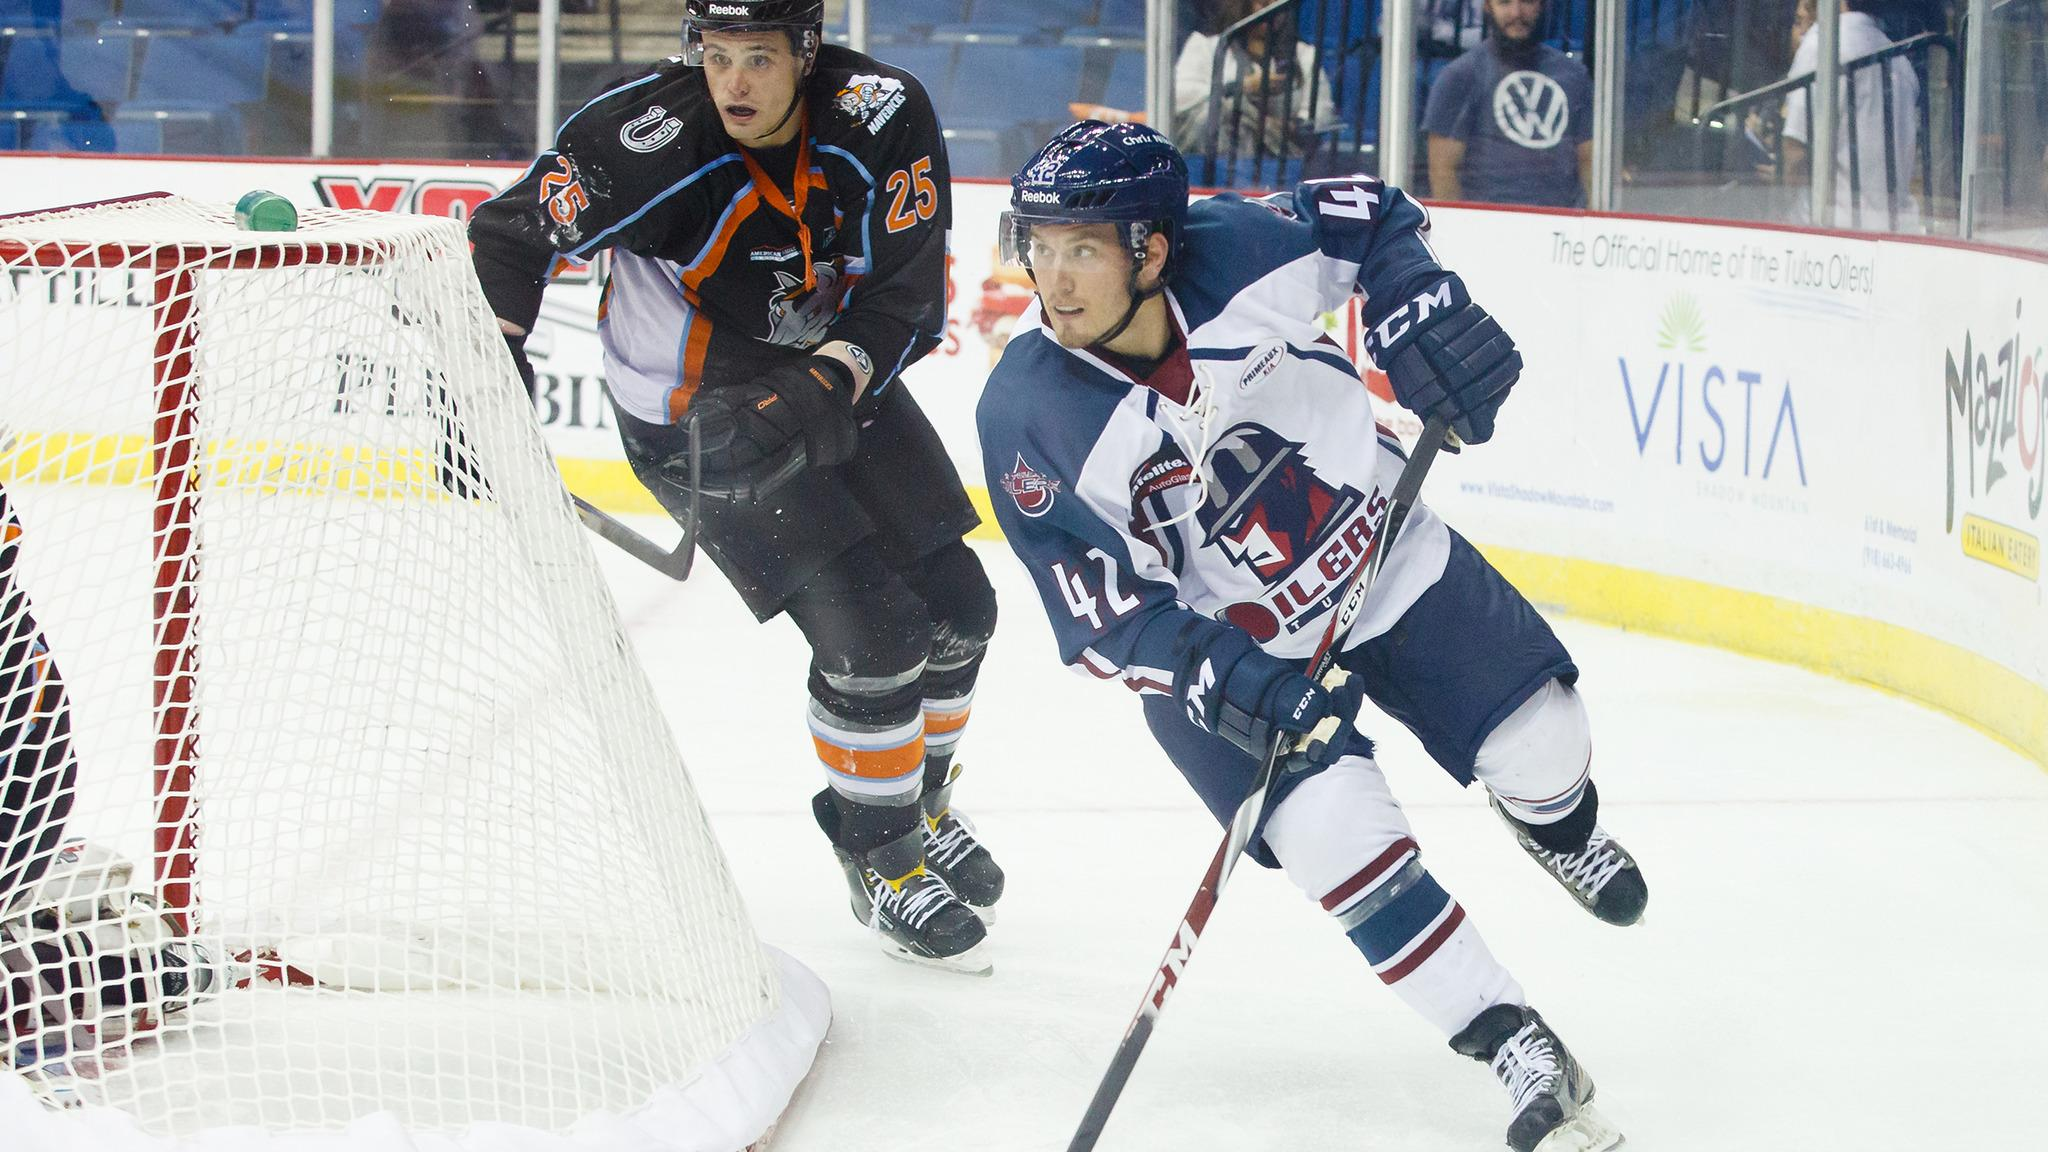 Tulsa Oilers vs. Fort Wayne Komets at BOK Center